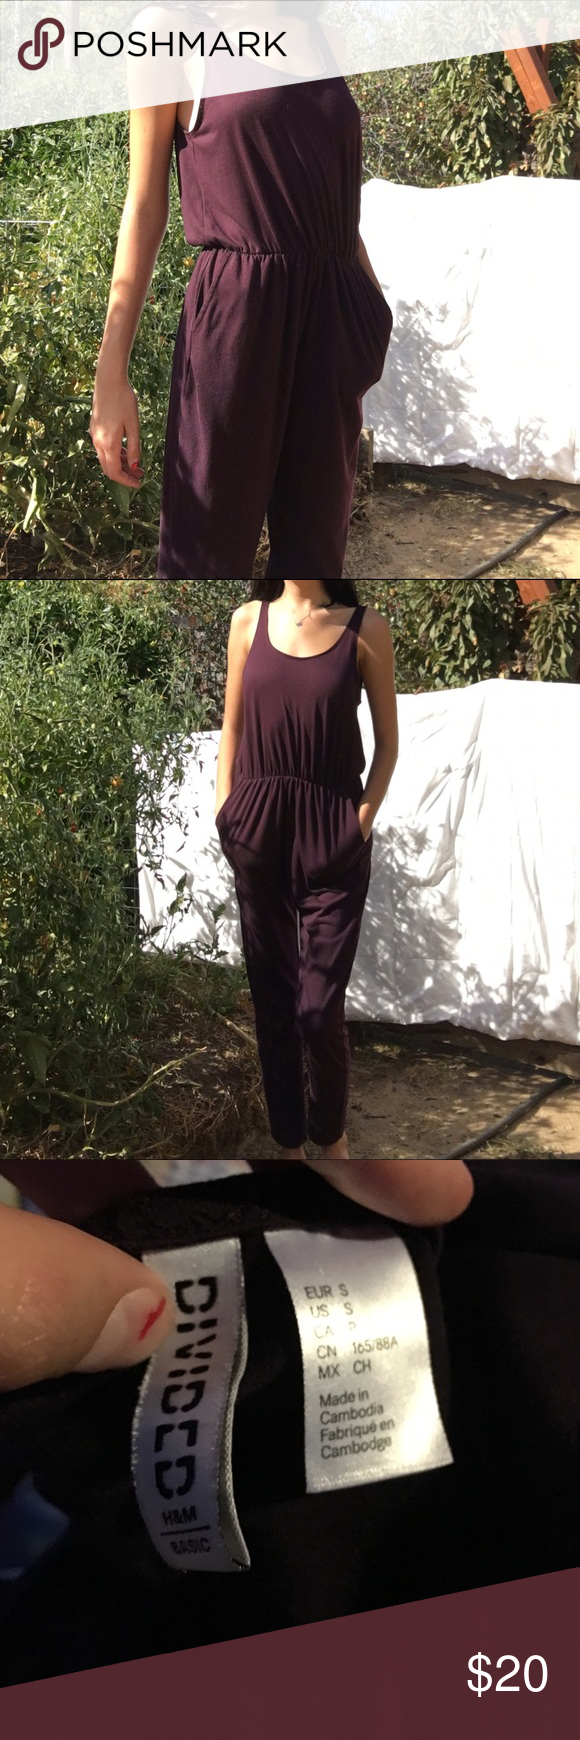 Pant suit 70% polyester & 30% viscose. Never worn. H&M Pants Jumpsuits & Rompers